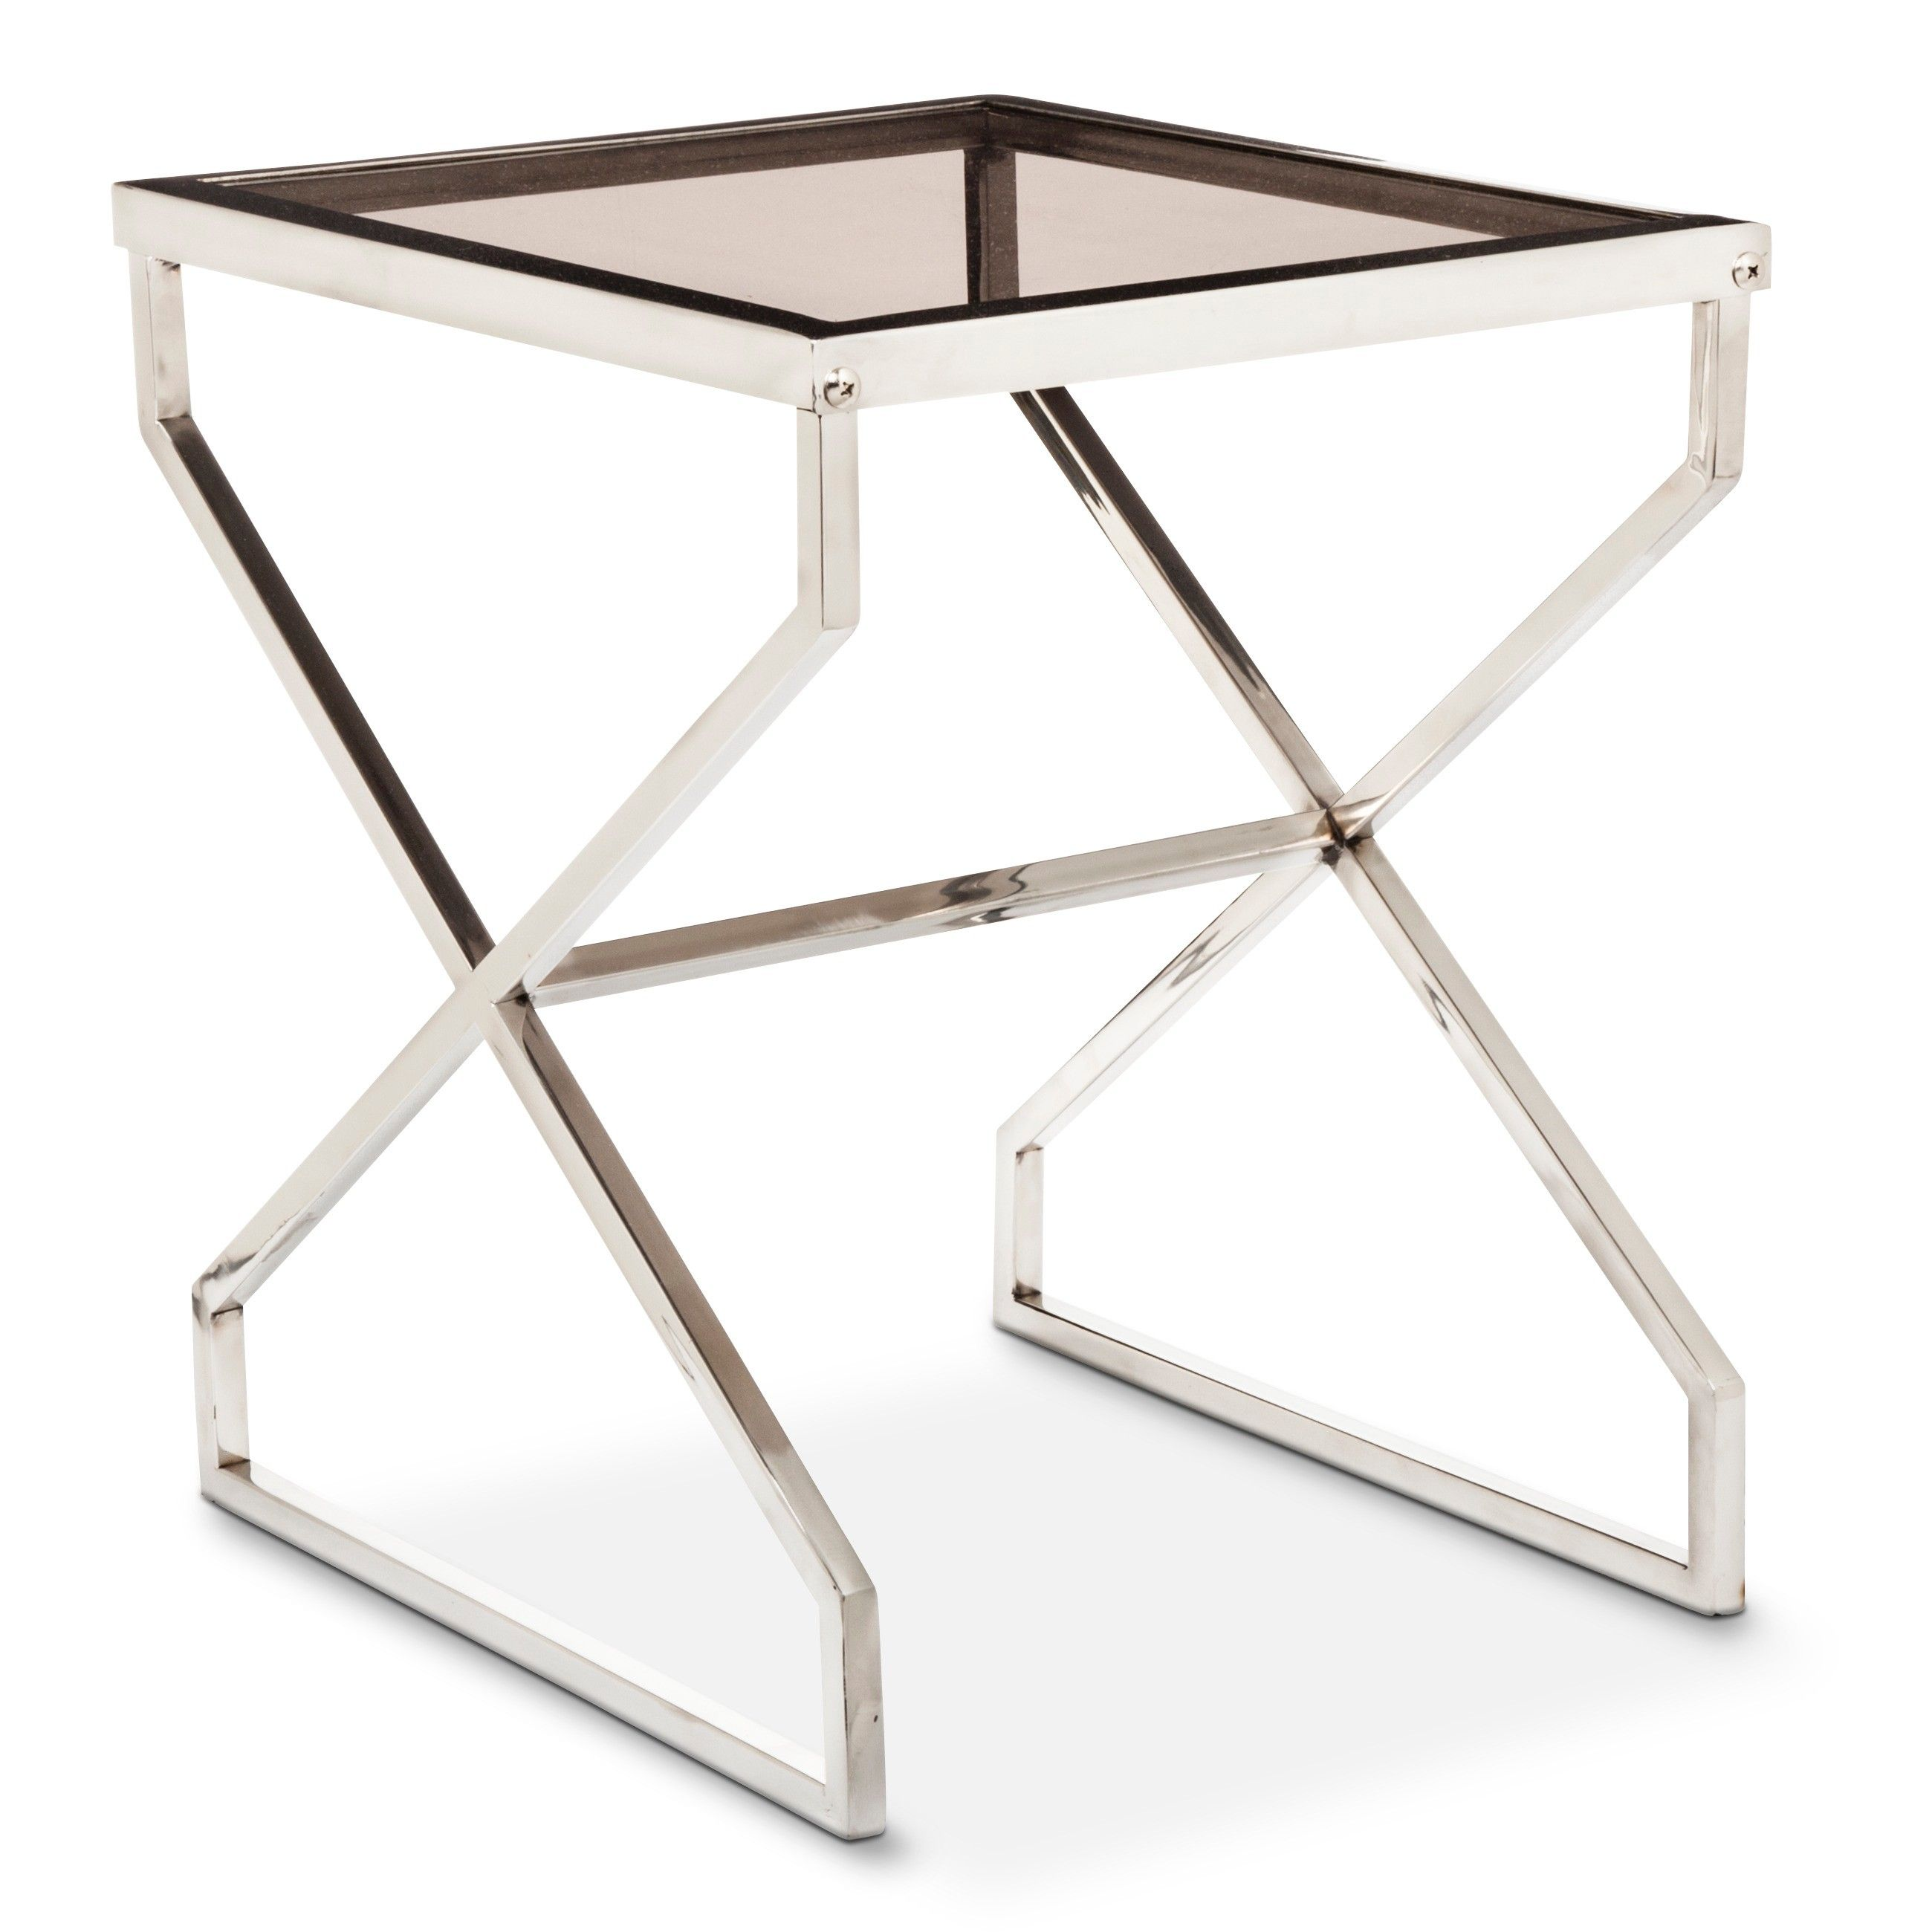 nate berkus silver and smoked glass accent table target moroccan side large white wall clock wood pedestal stand black metal end gold ikea plastic storage boxes with wheels